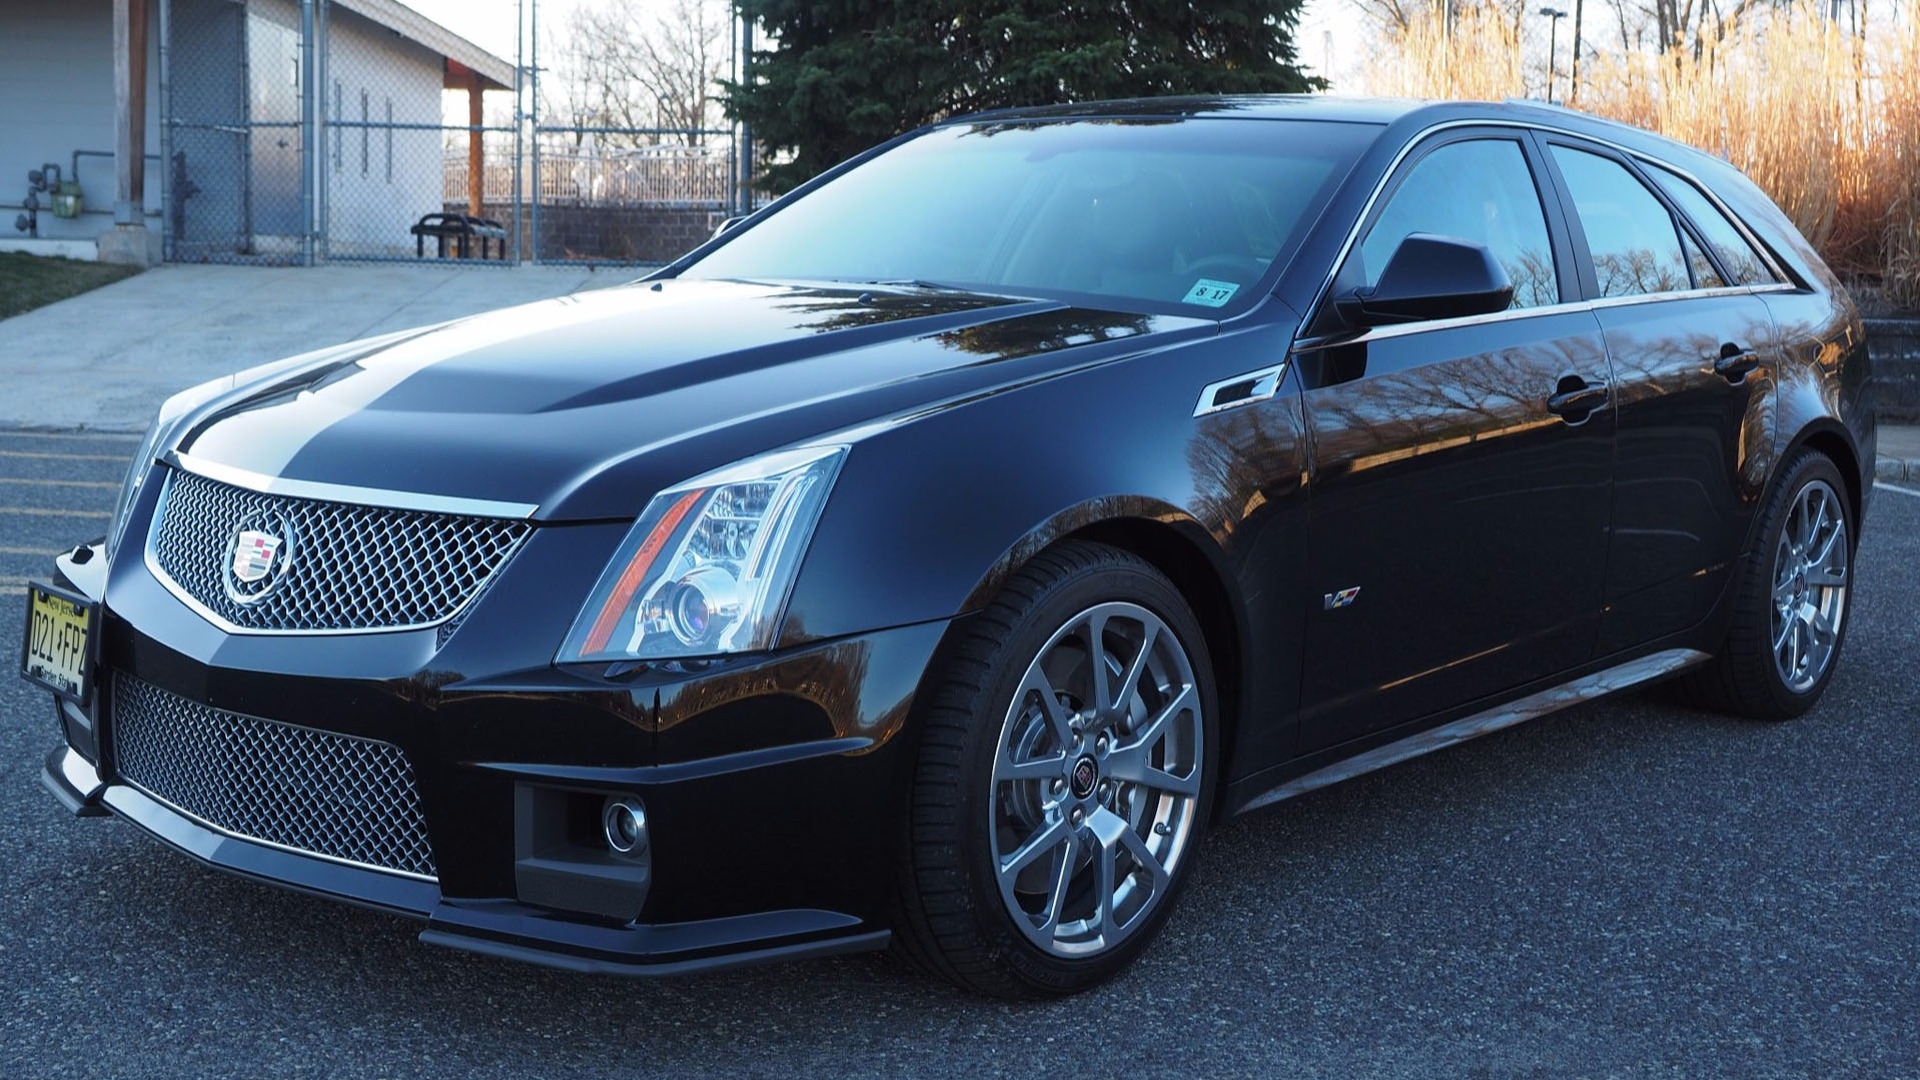 Cadillac Cts V Wagon For Sale >> Score This Rare 2012 Cadillac CTS-V Manual Wagon While It's Affordable